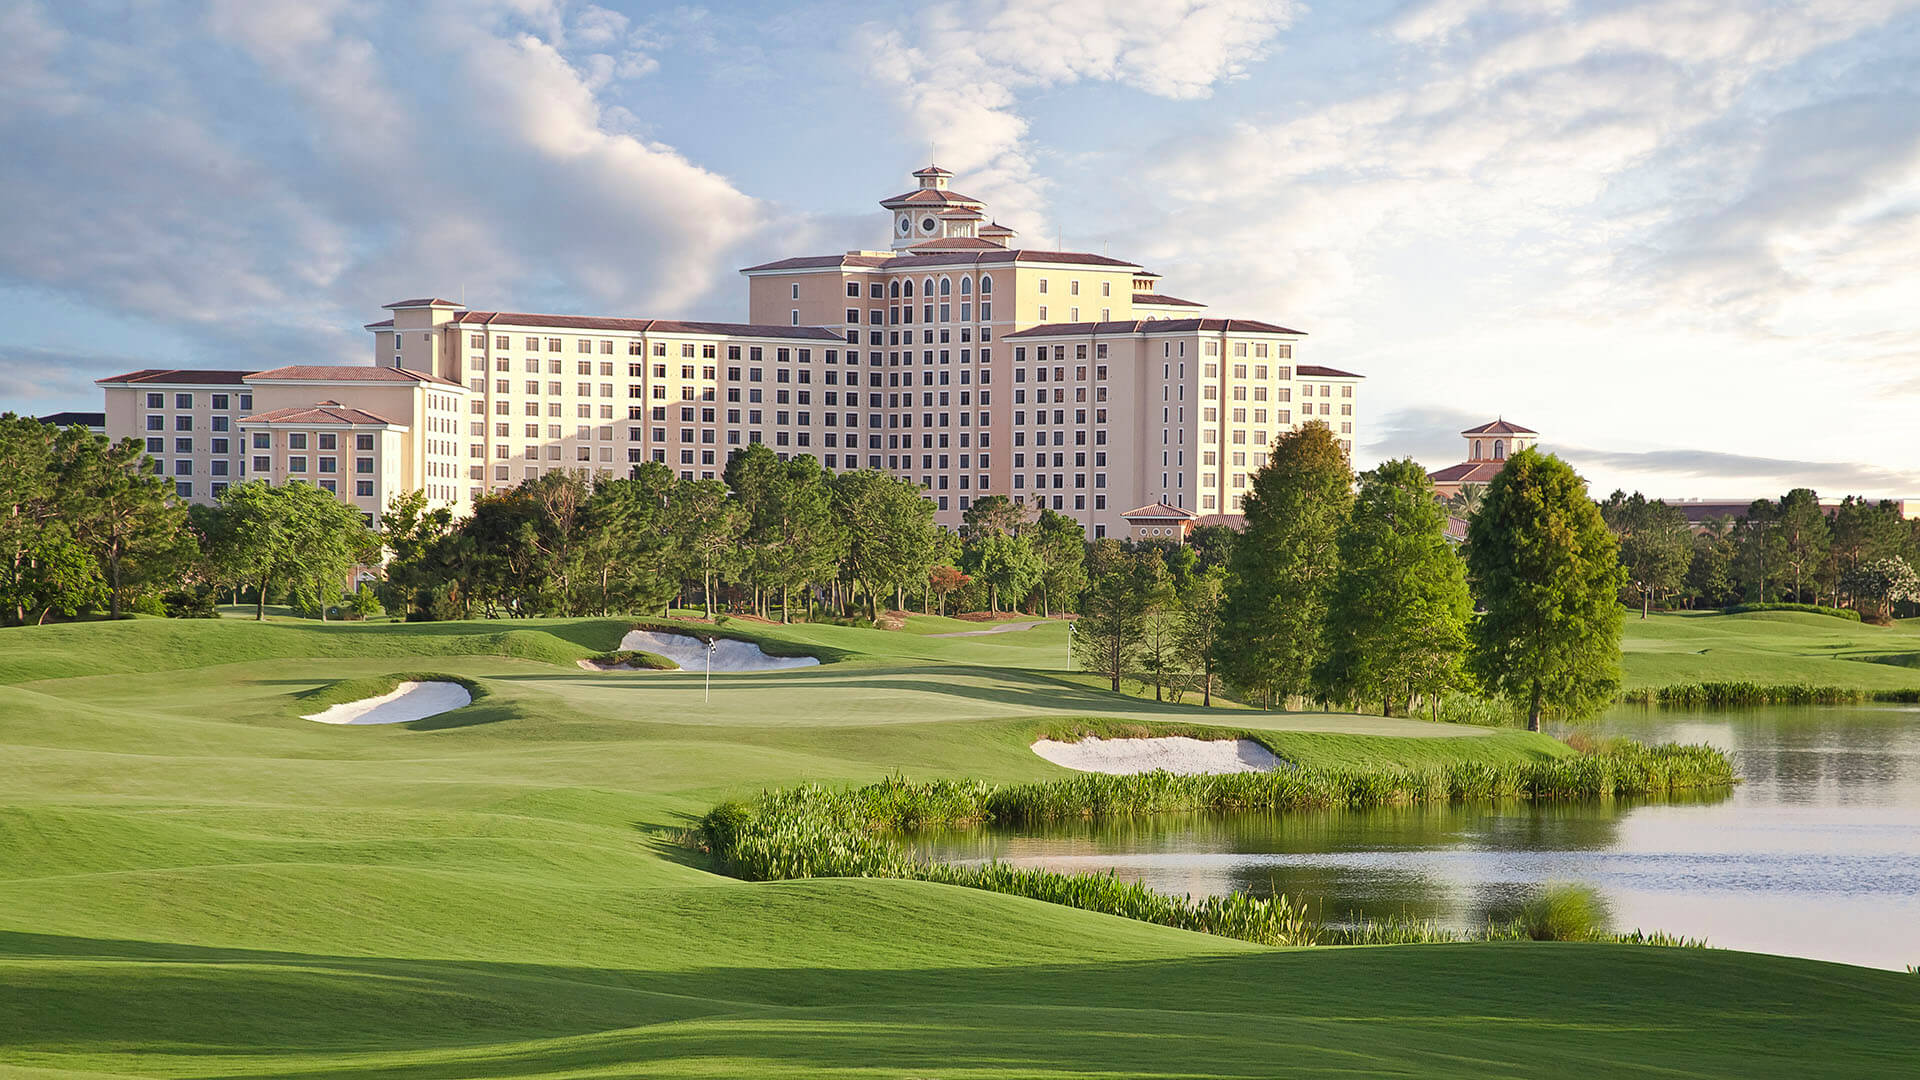 STAY AND PLAY AT ROSEN SHINGLE CREEK